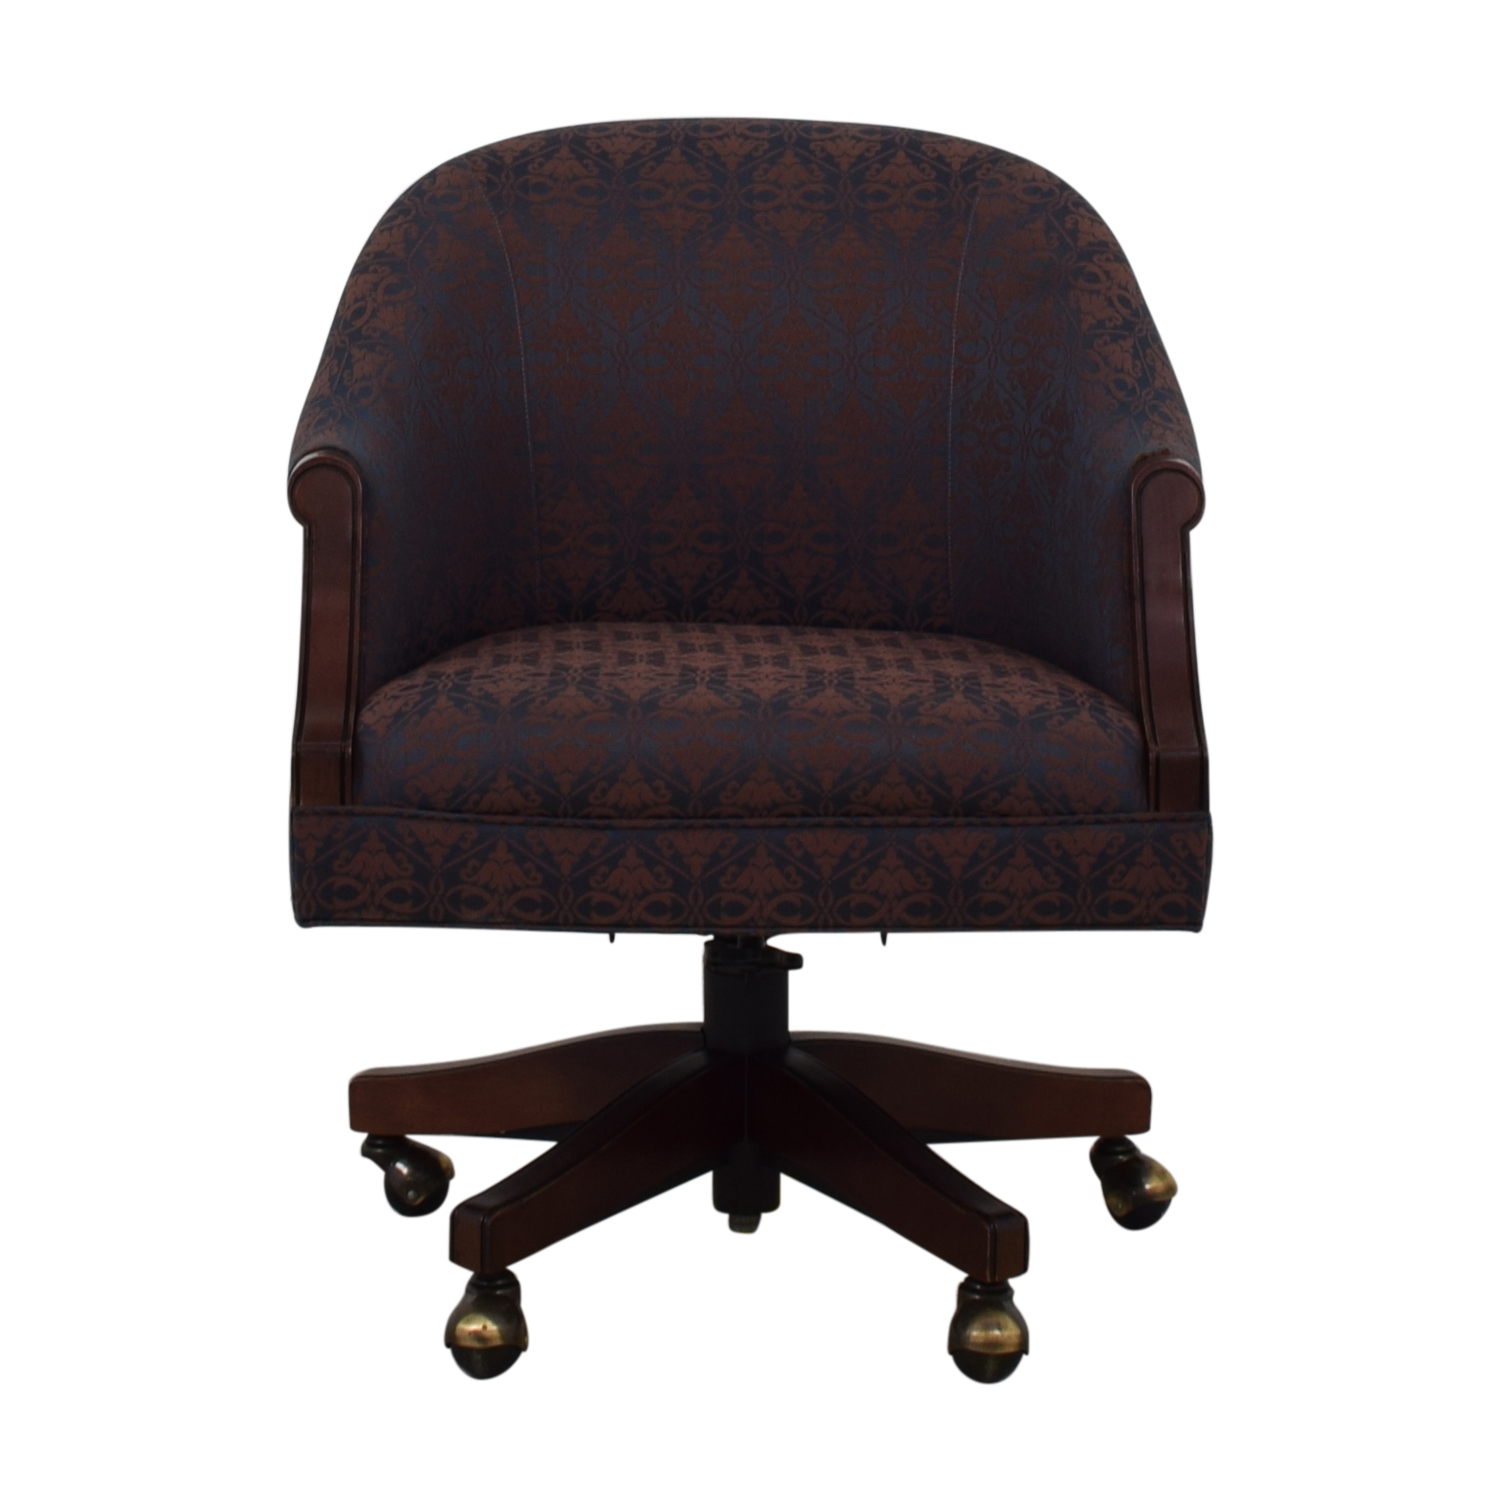 Kimball Kimball Independence Newcastle Swivel Chair on sale